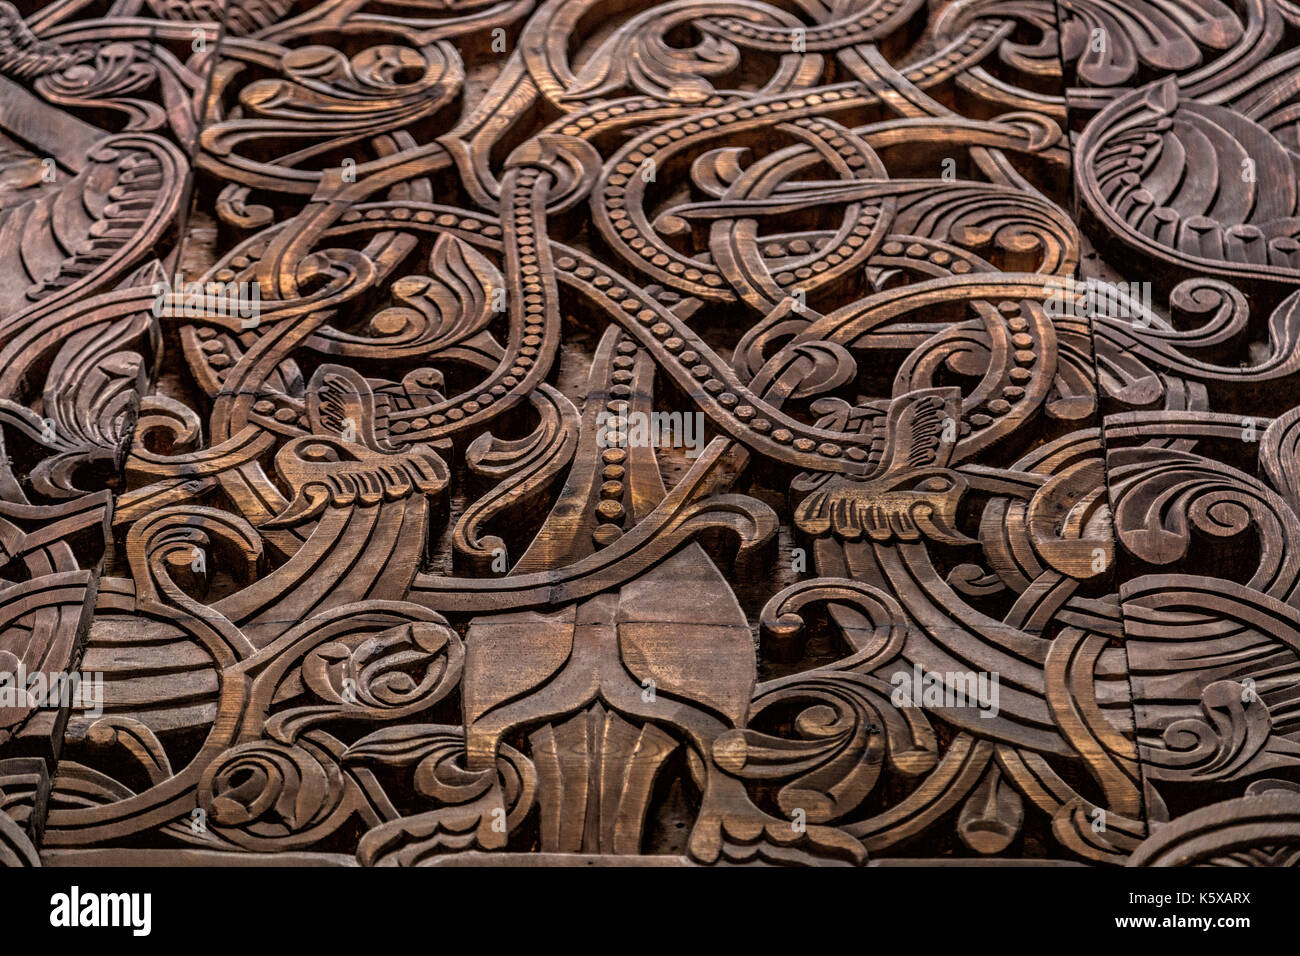 Close-up of woodcarvings of the Stave church portal in the NORSK FOLKEMUSEUM-  an open air Museum of Norwegian Cultural - Stock Image